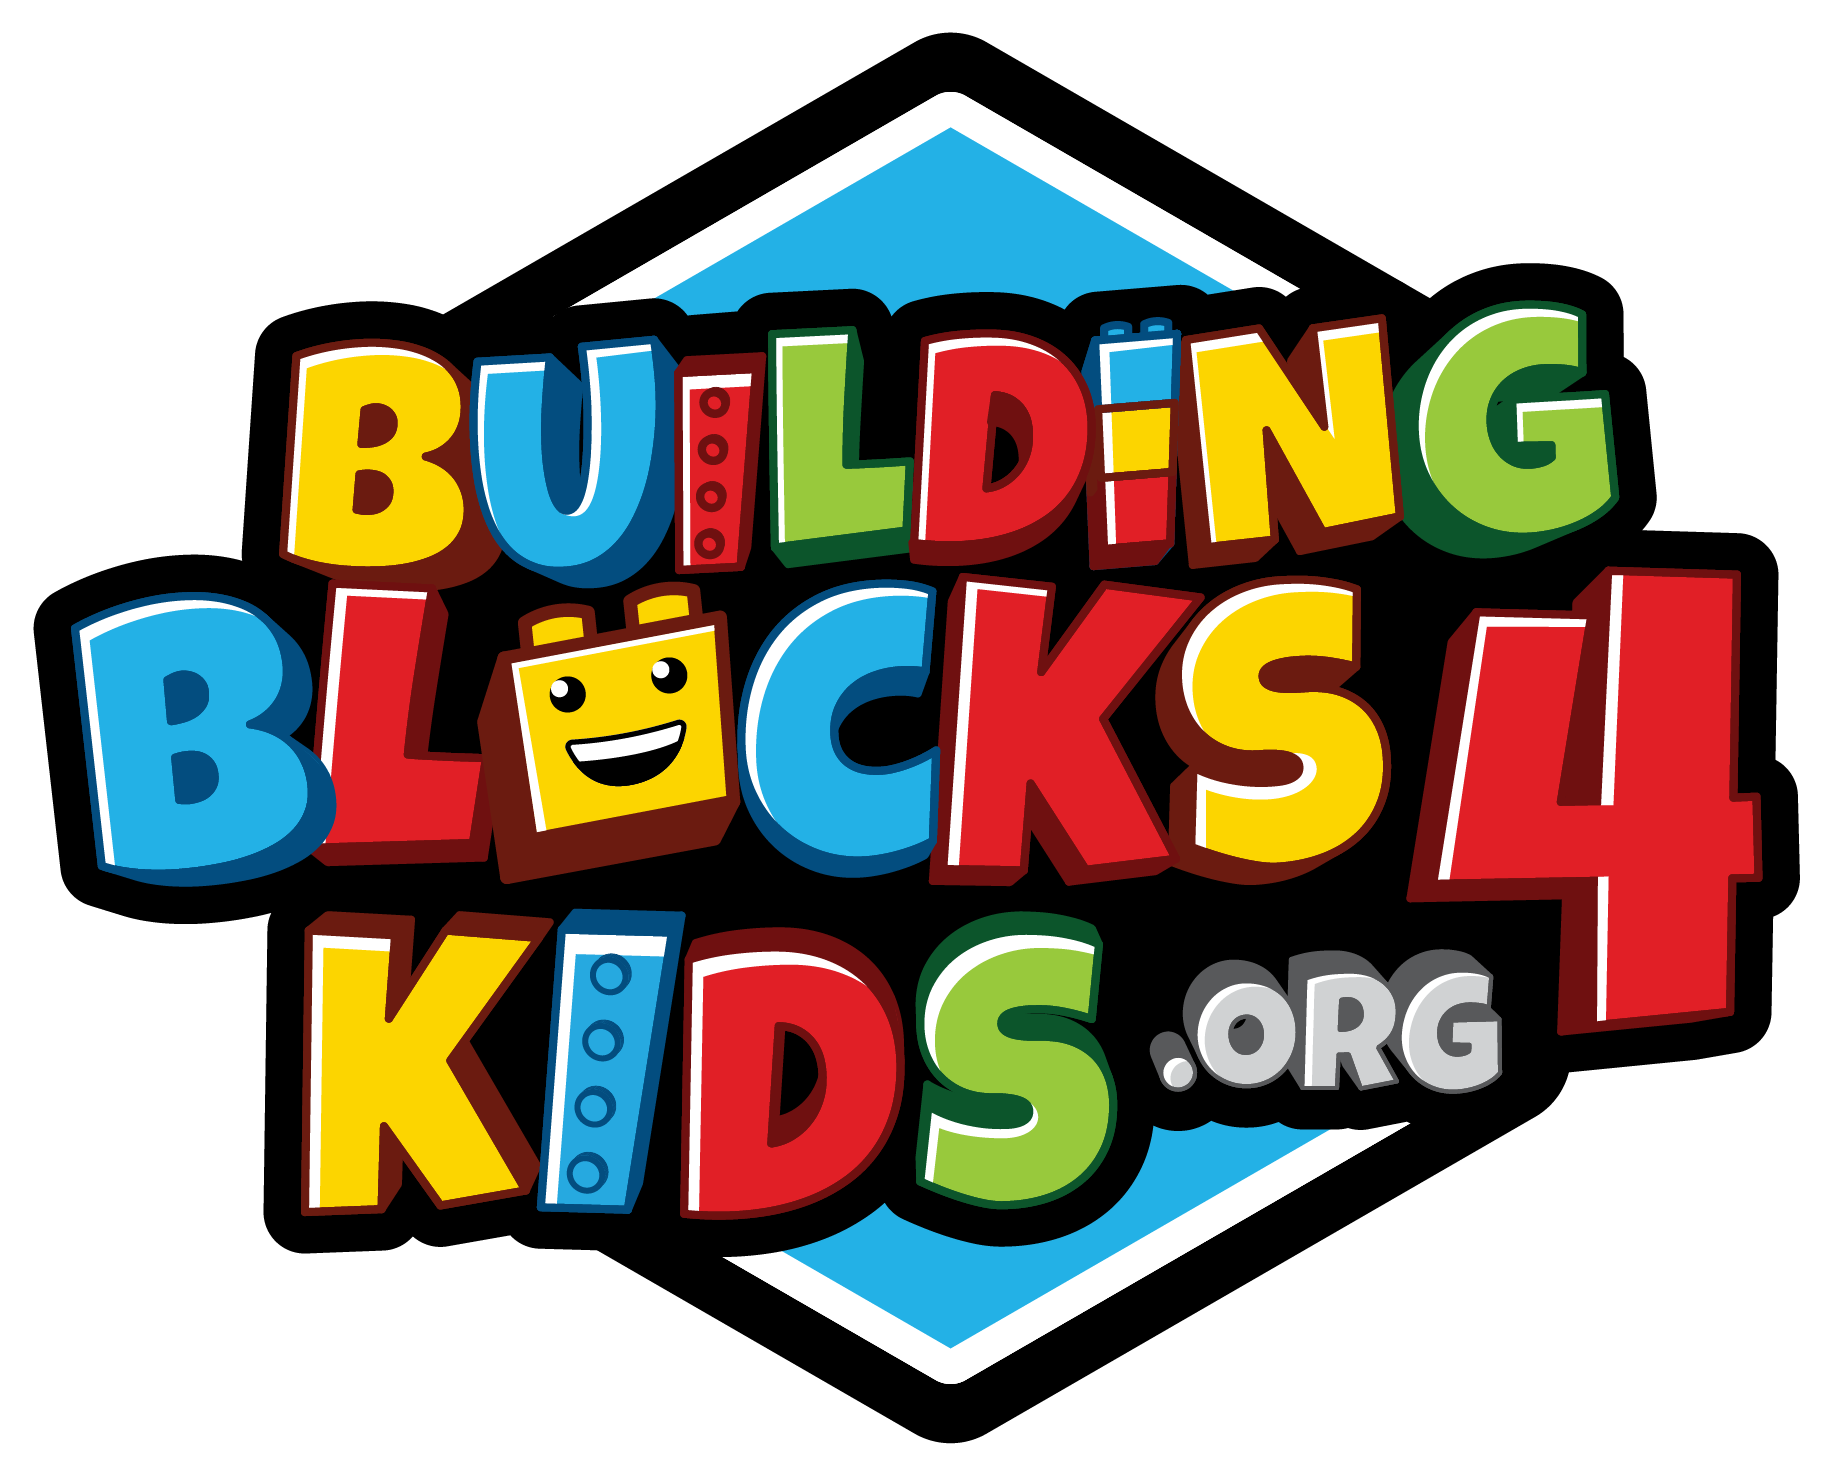 Building Blocks 4 Kids